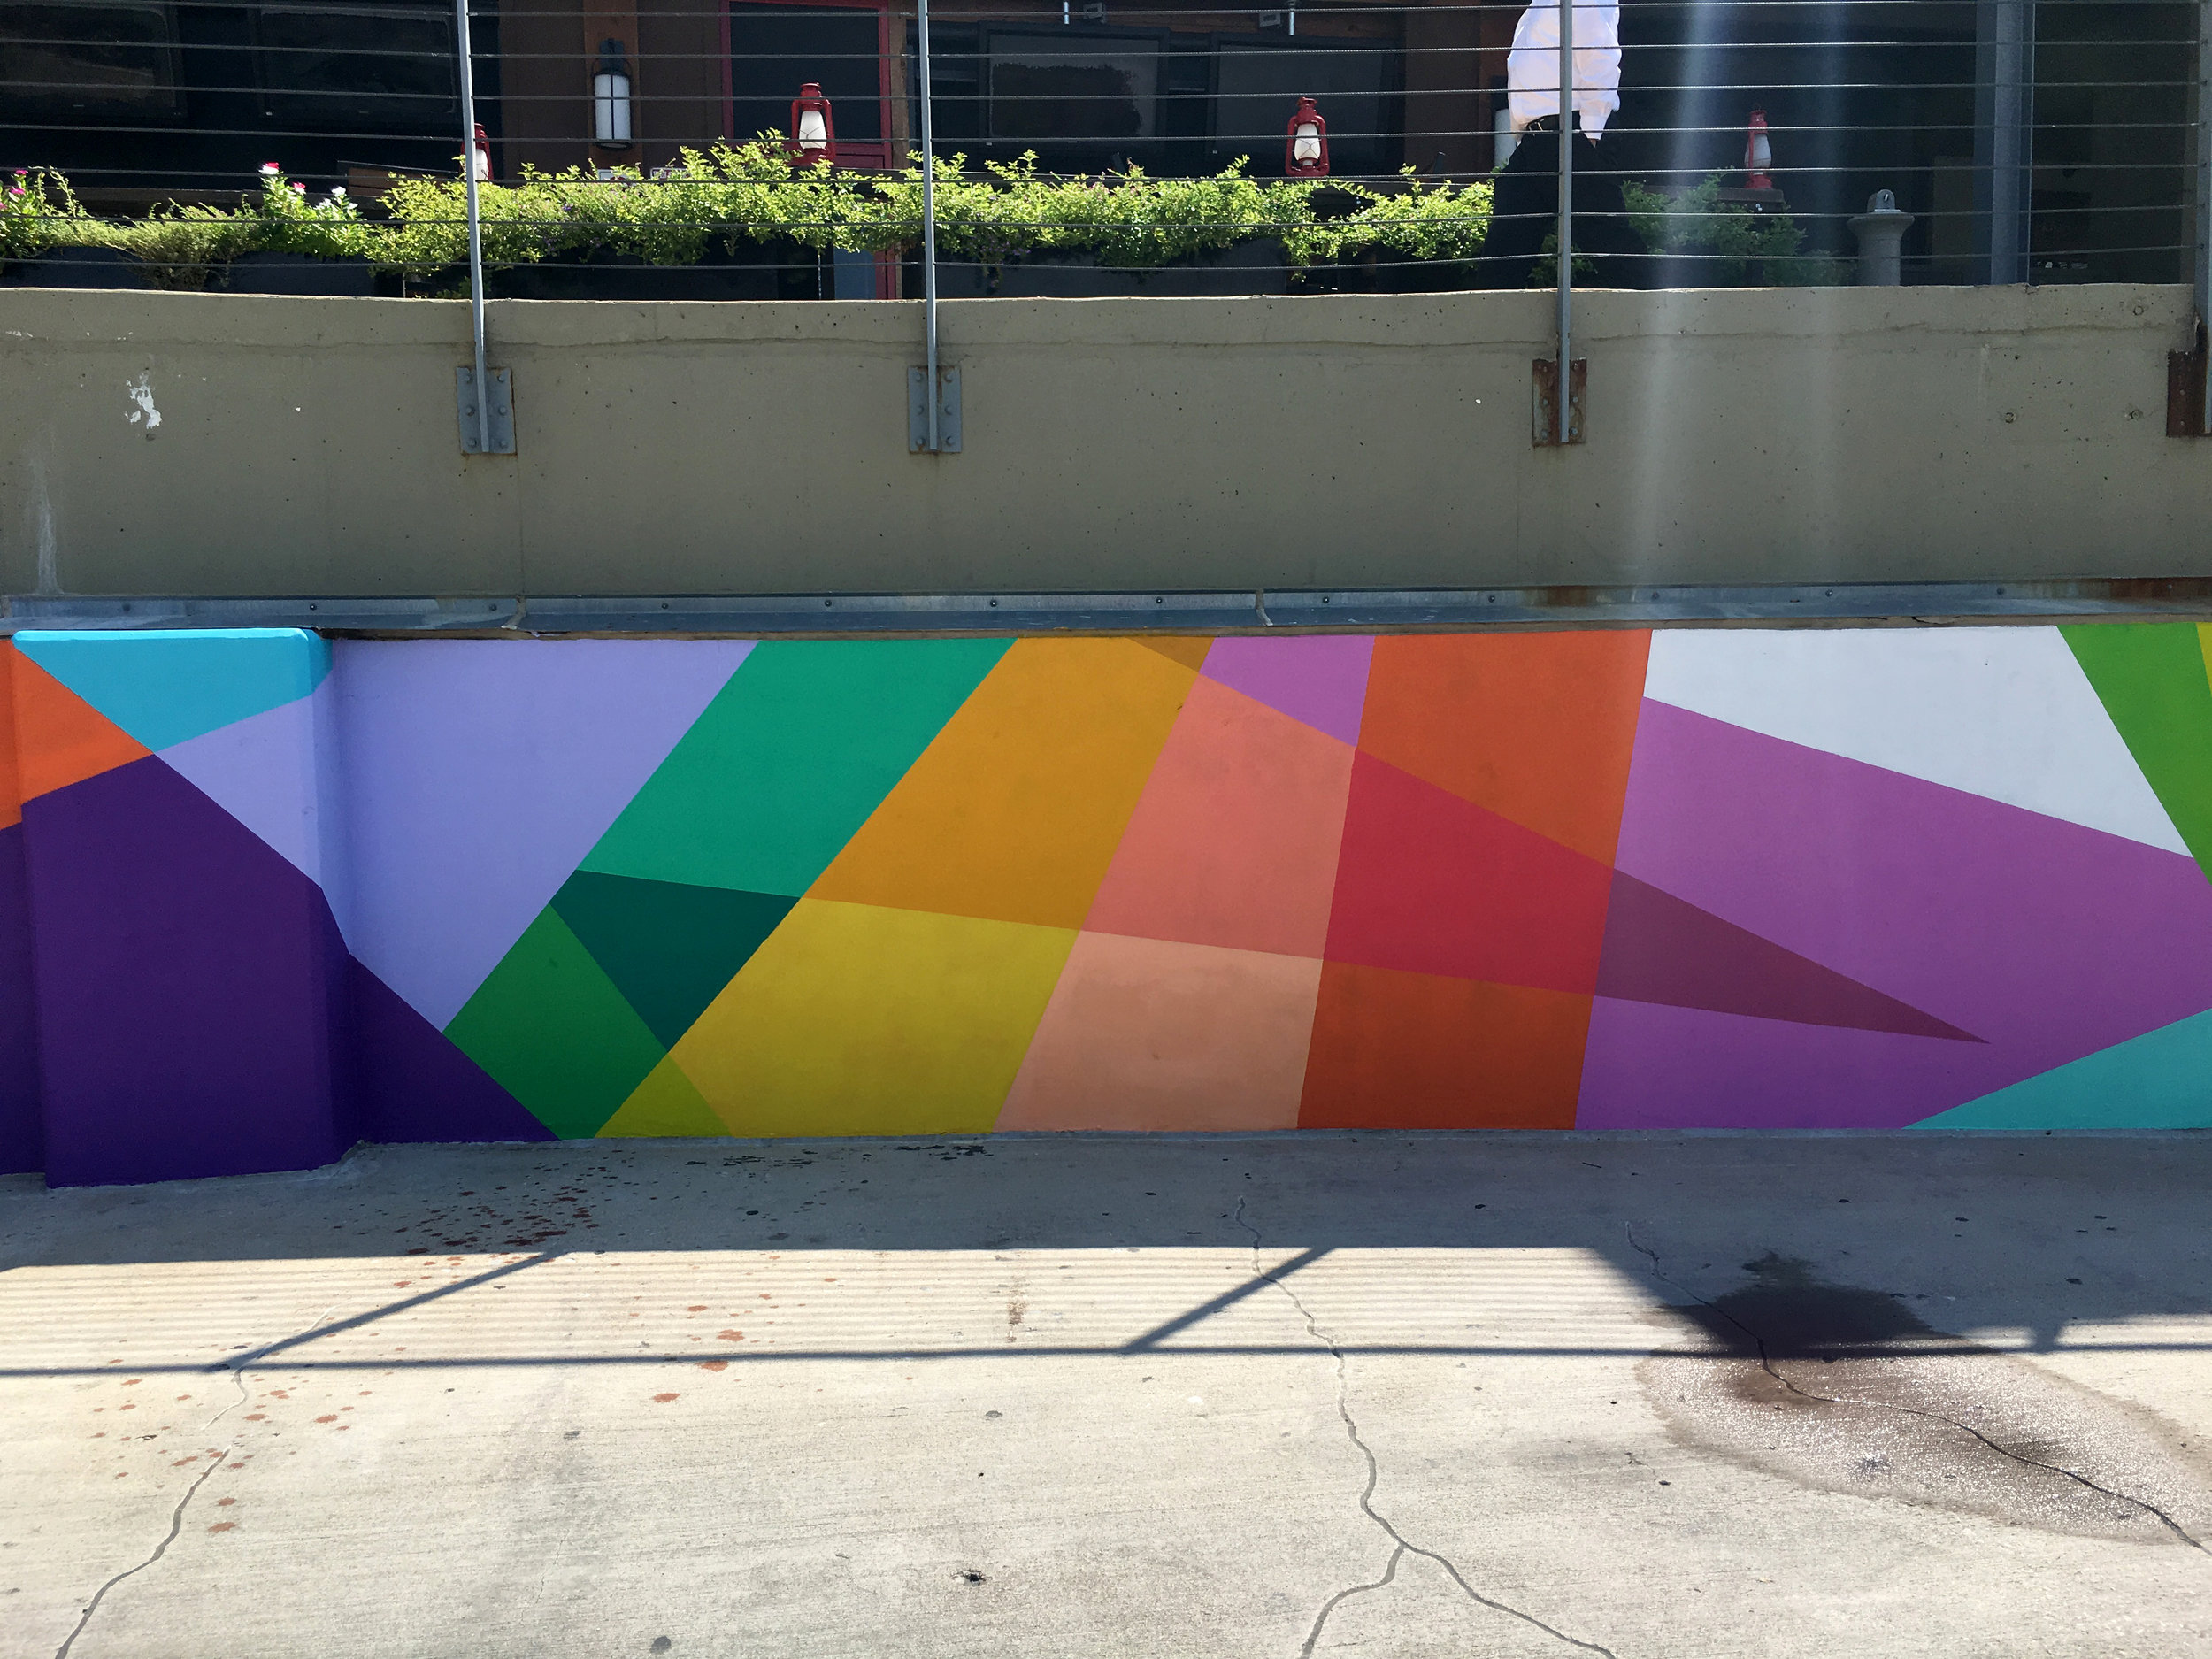 Kennimer's murals are a seemingly random placement of geometry, but have actually been carefully crafted to create a rule for the eye and then break it before a pattern is established.